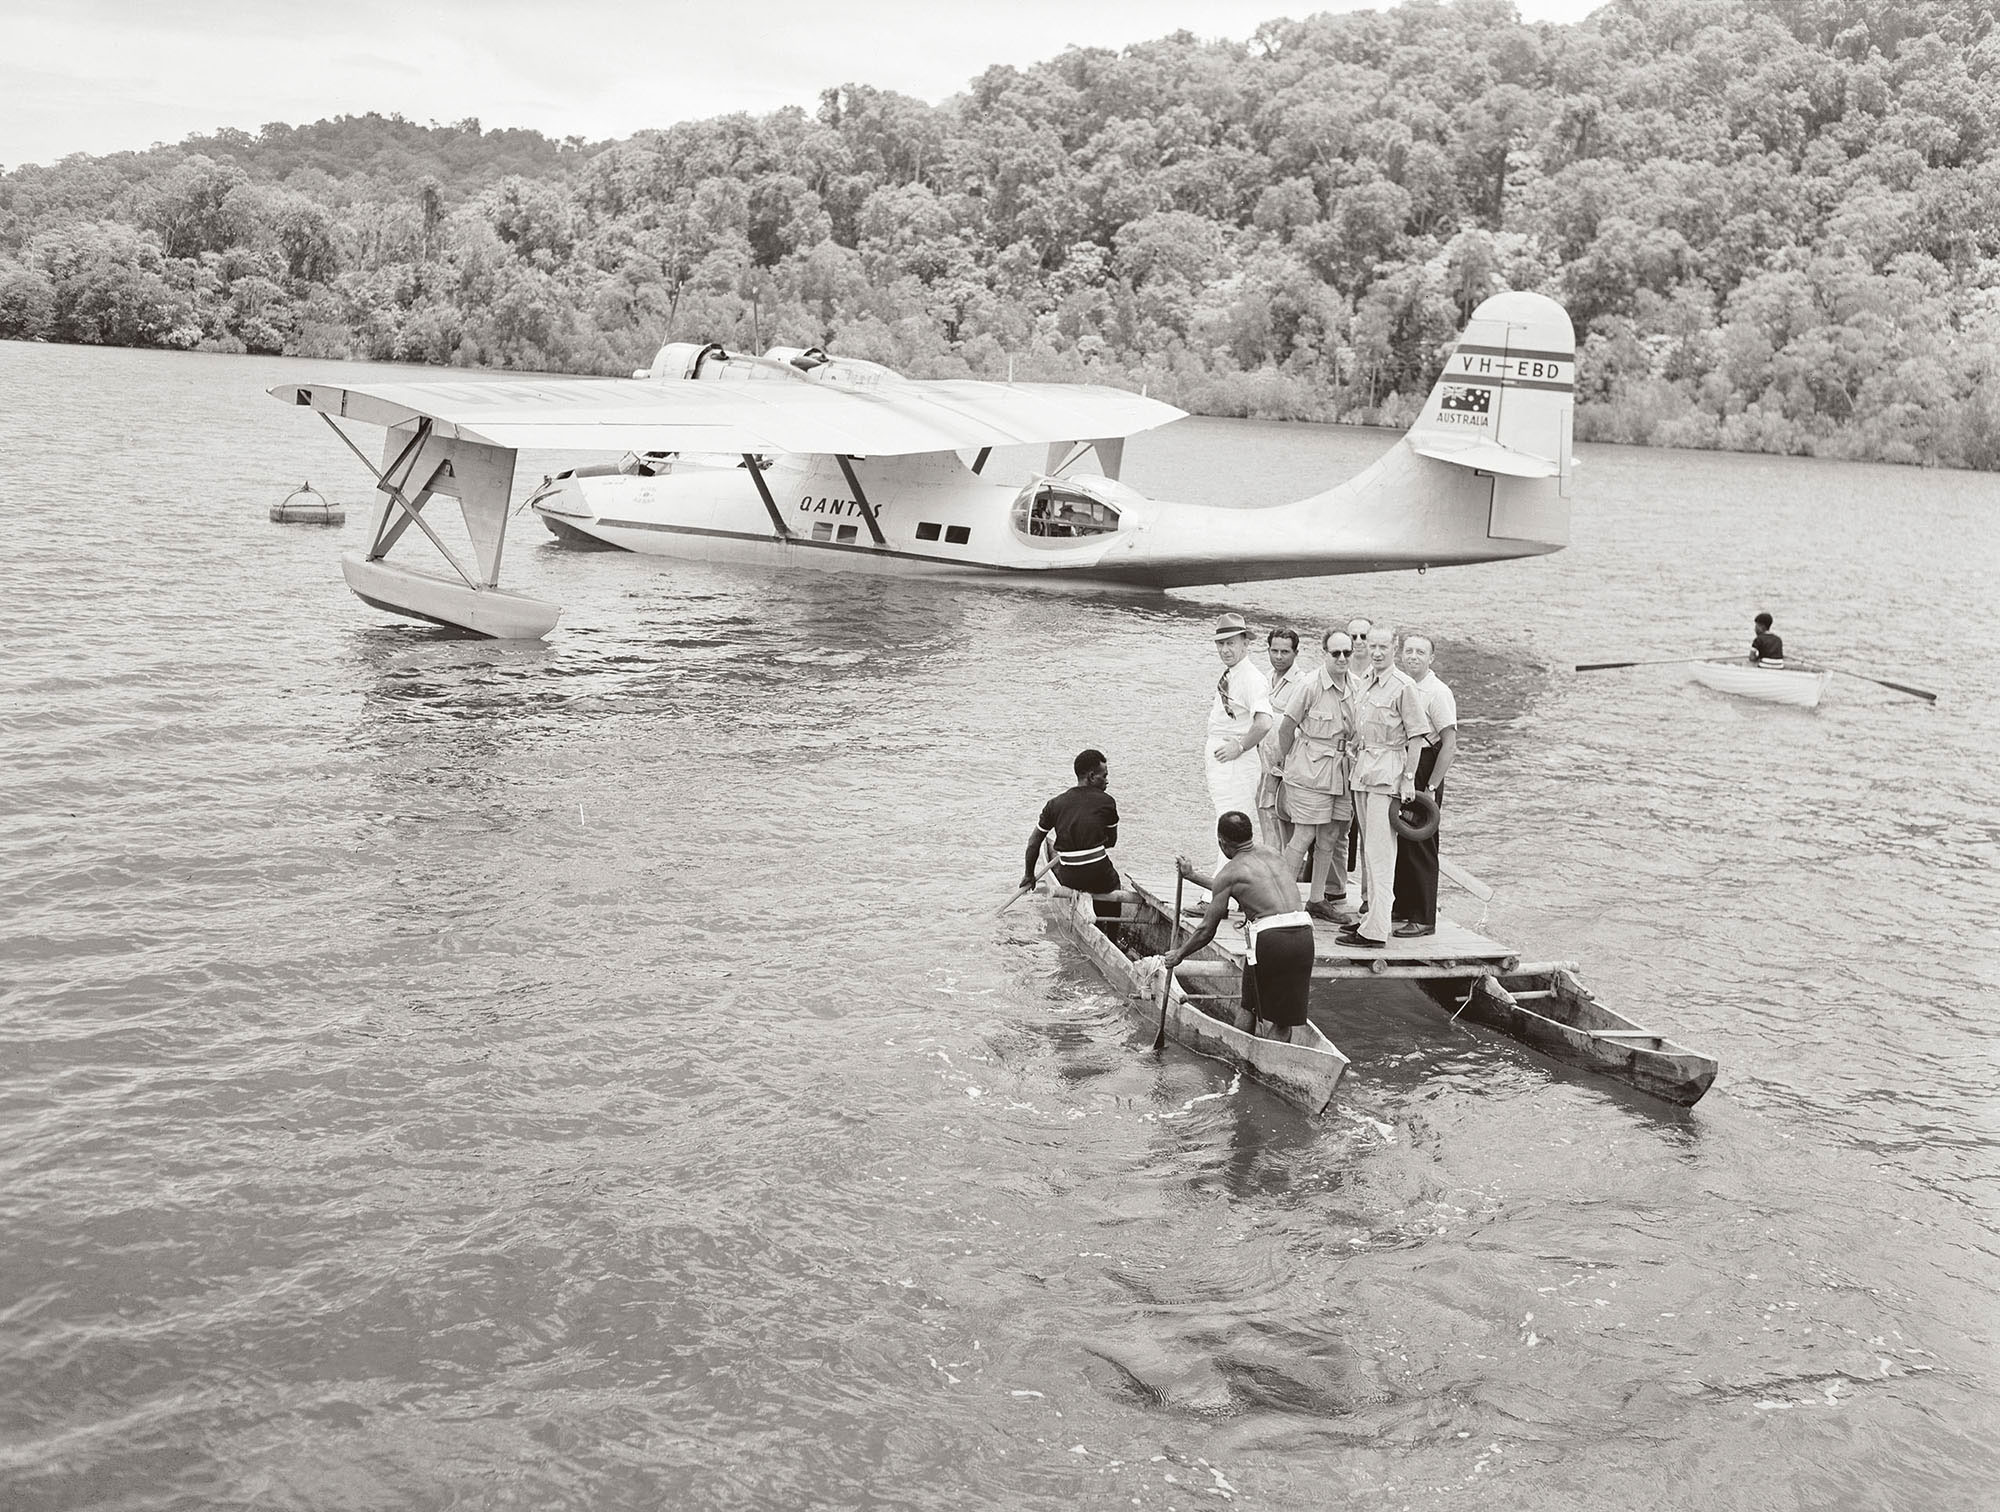 Members of the UN arrive on Tonelei Harbour at the southern end of Bougainville Island. Photographer: W. Brindle. Collection of the National Archives of Australia.